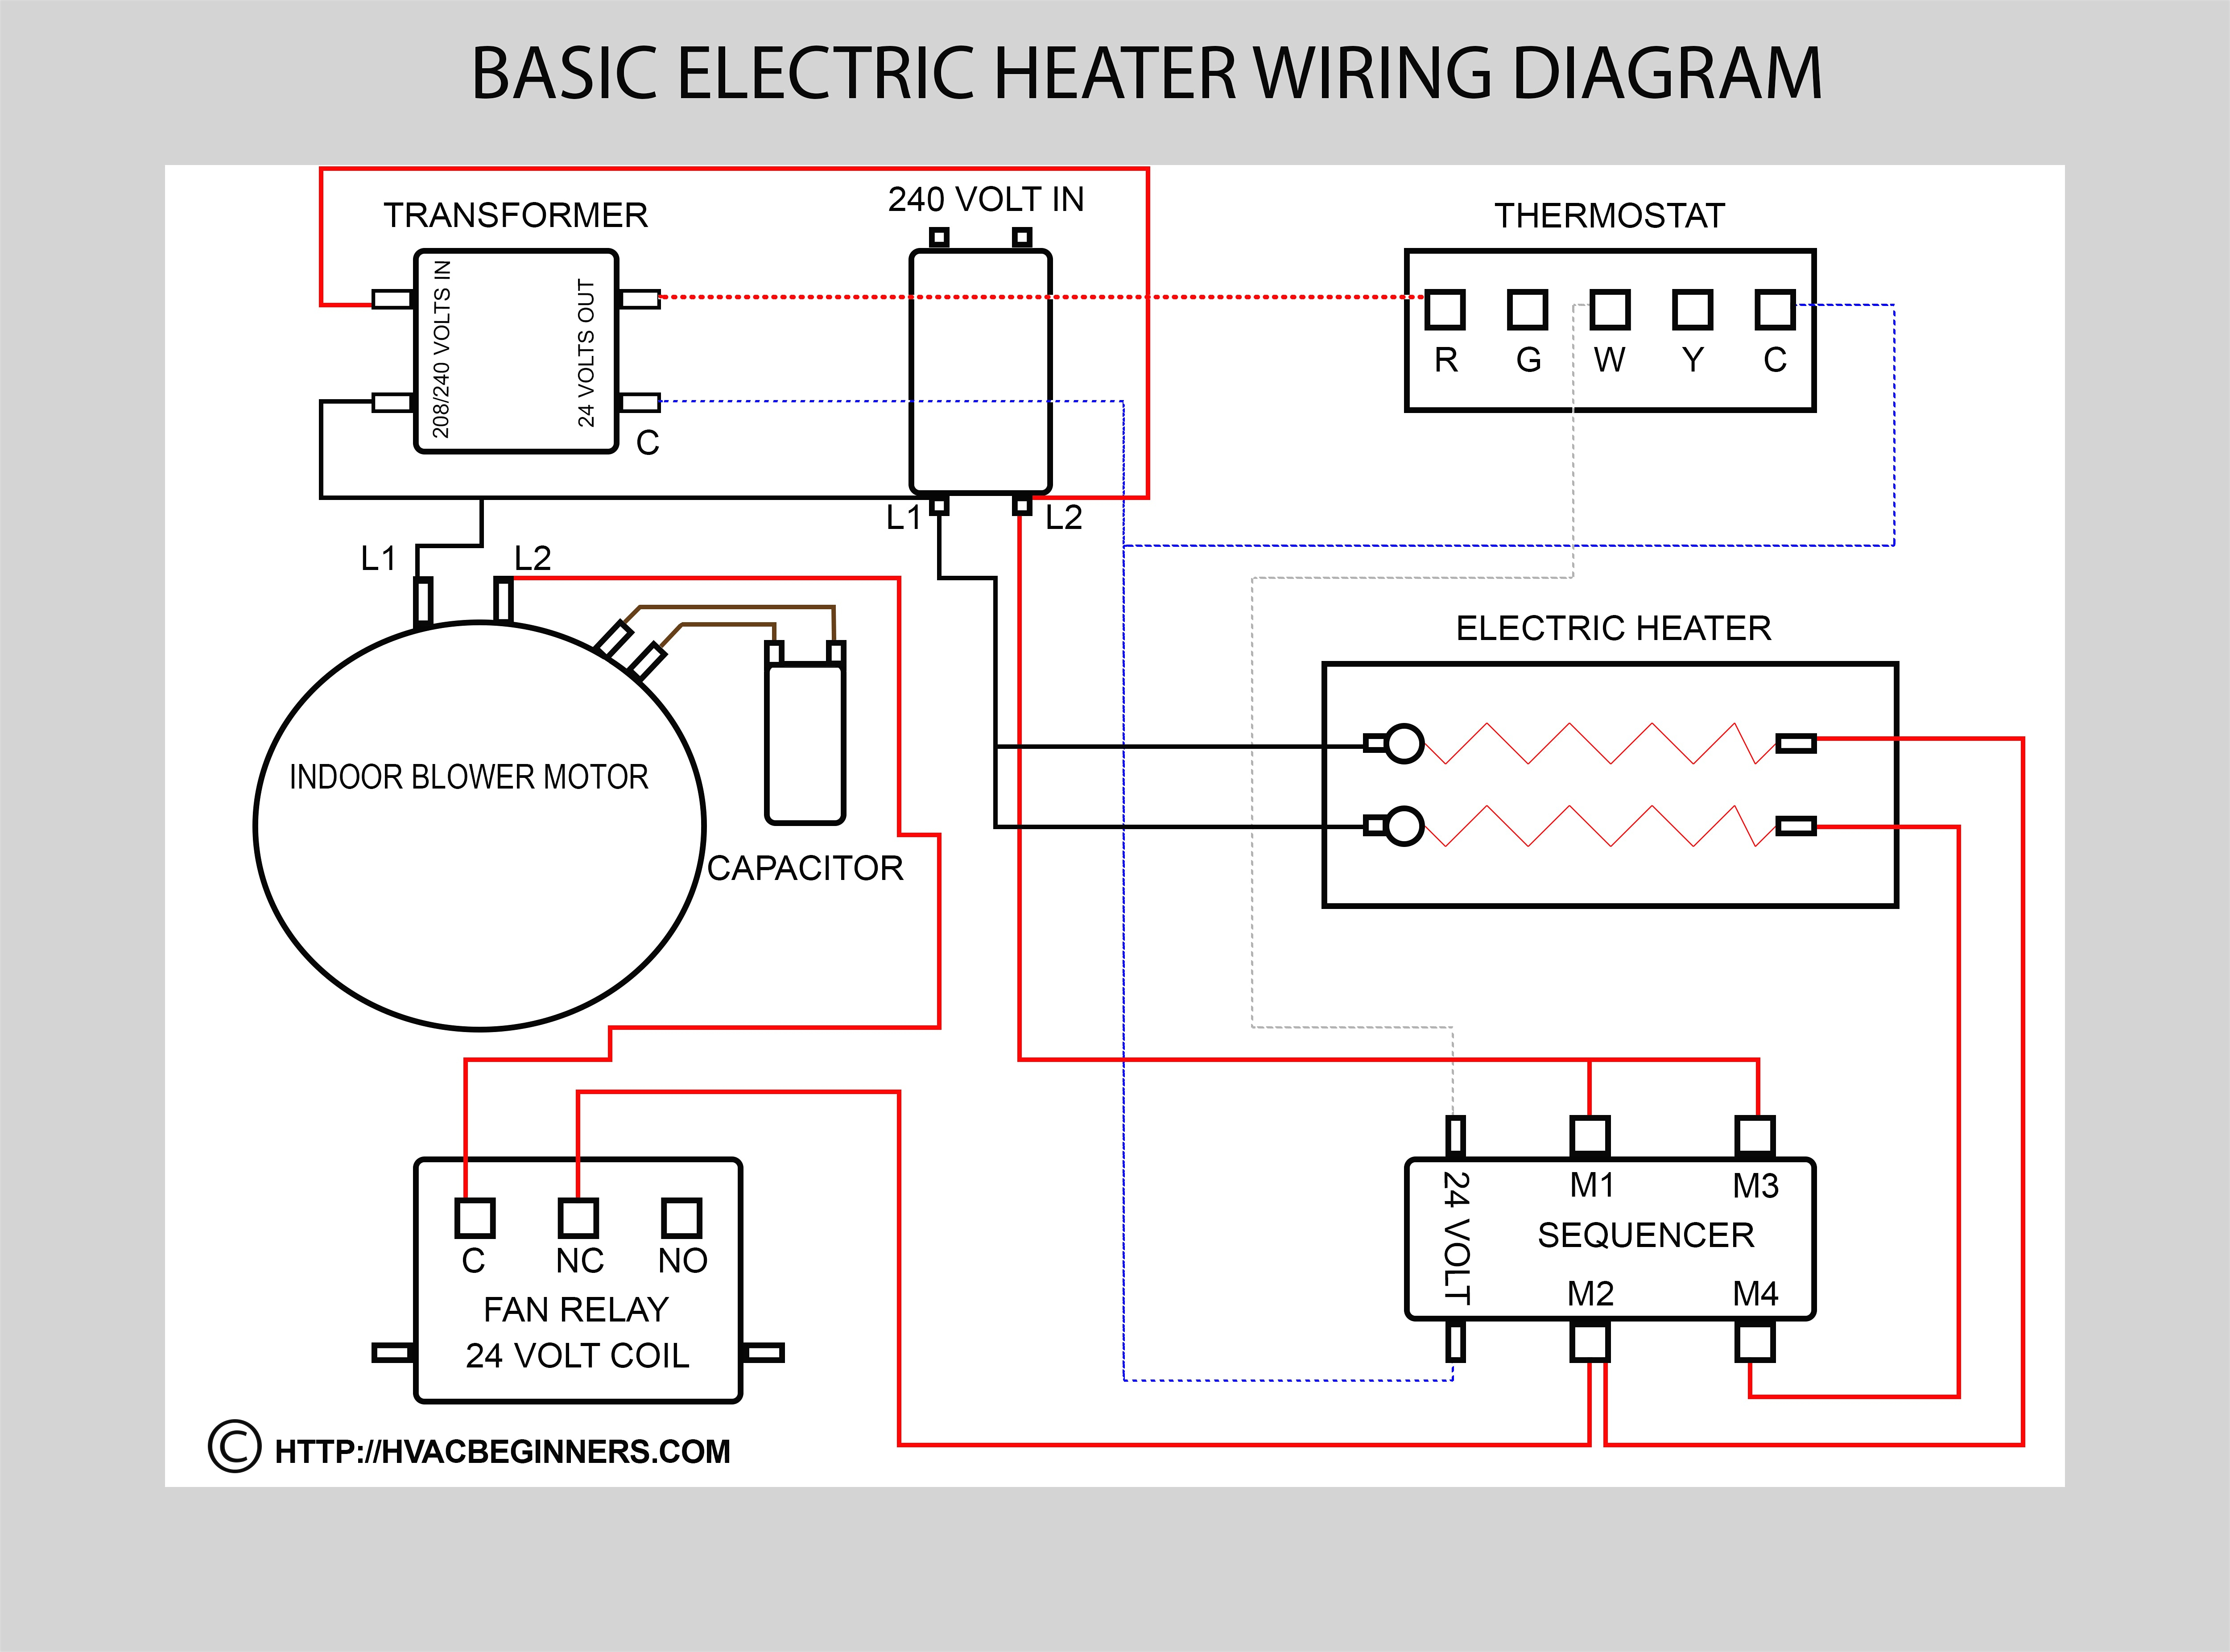 Central Air Conditioner Wiring Diagram On Split And Ac Compressor In - Central A C Wiring Diagram